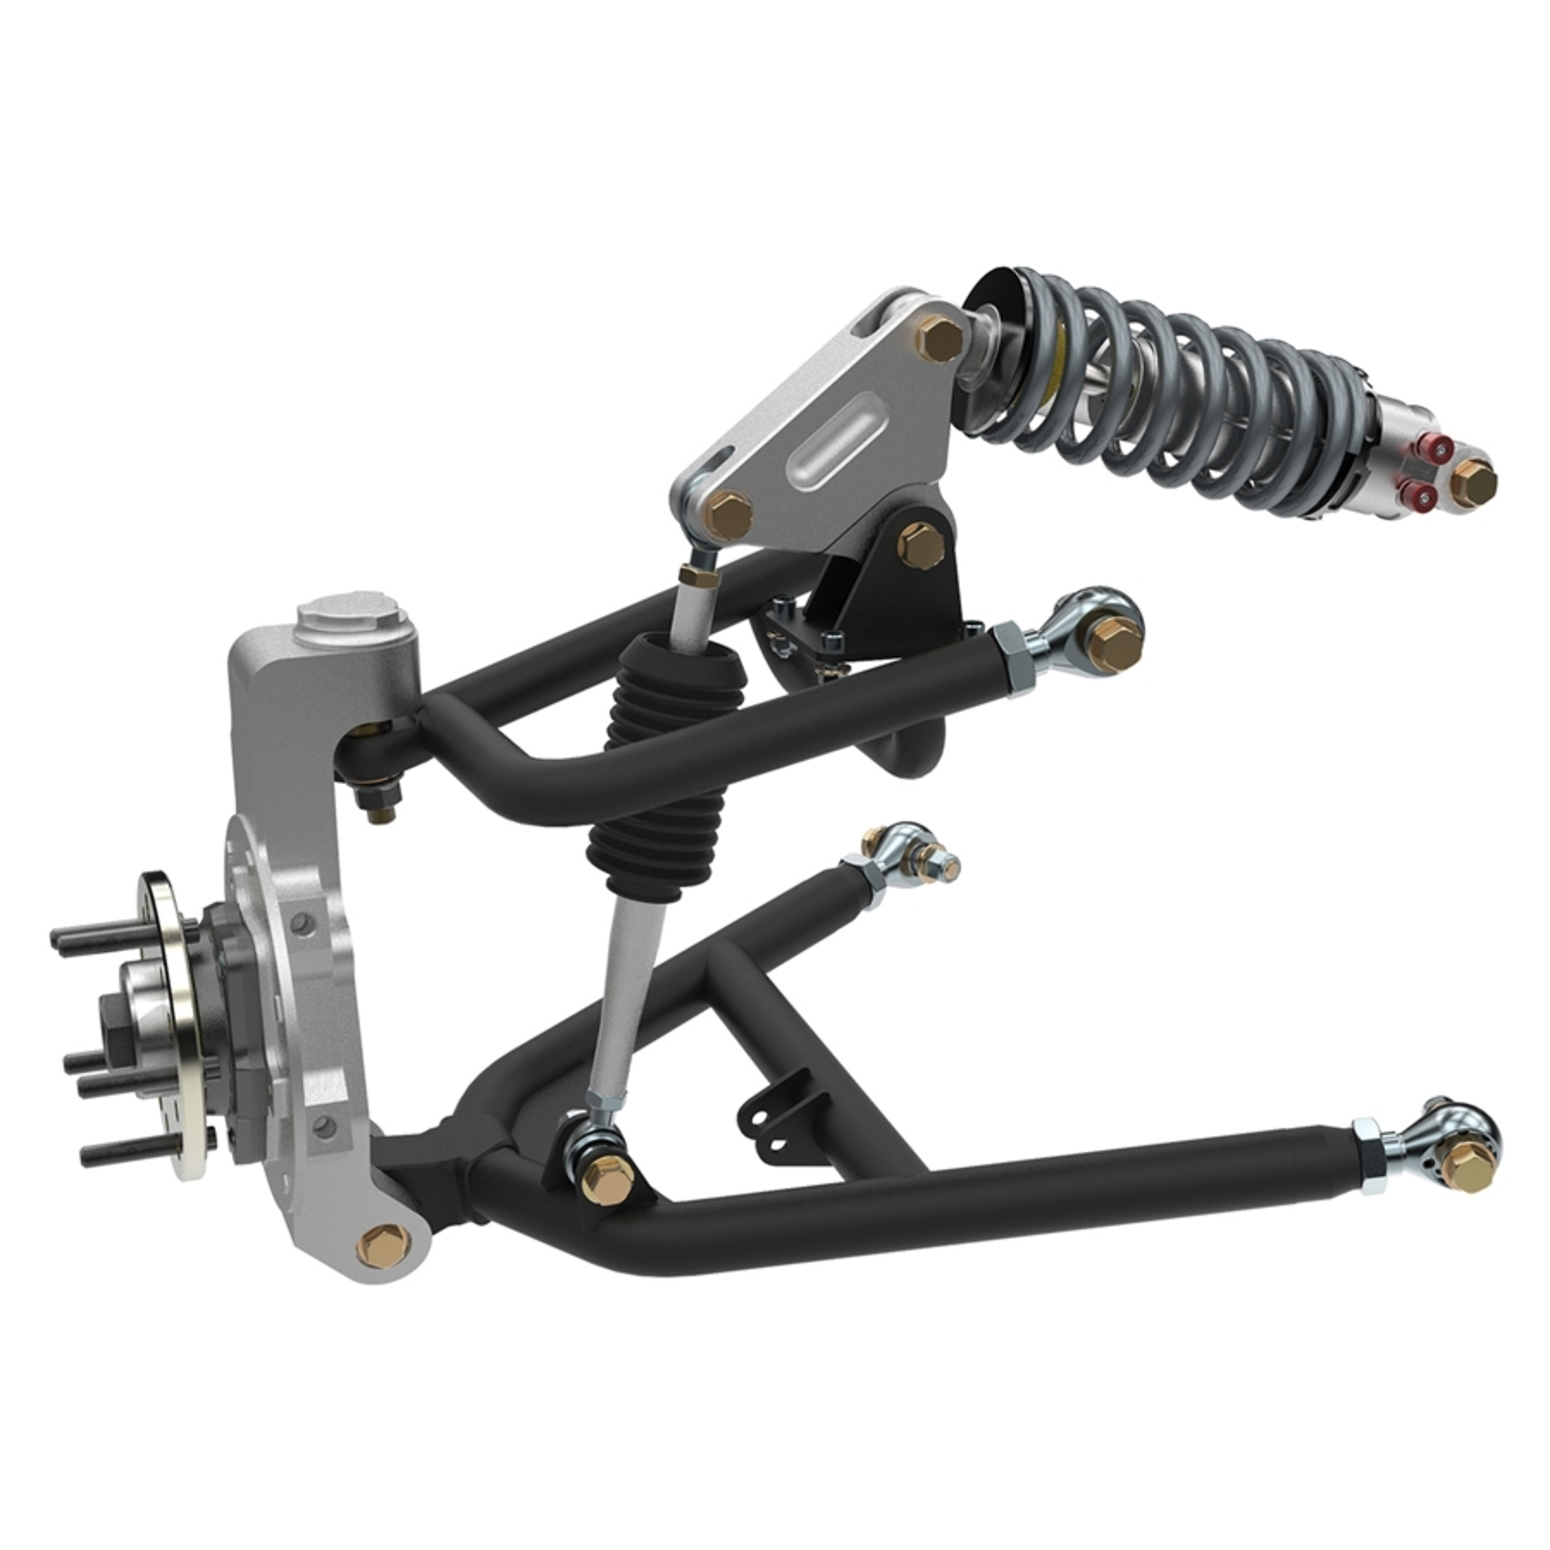 Suspenssion The Appeal Of Pushrod Suspension Why And Why Not